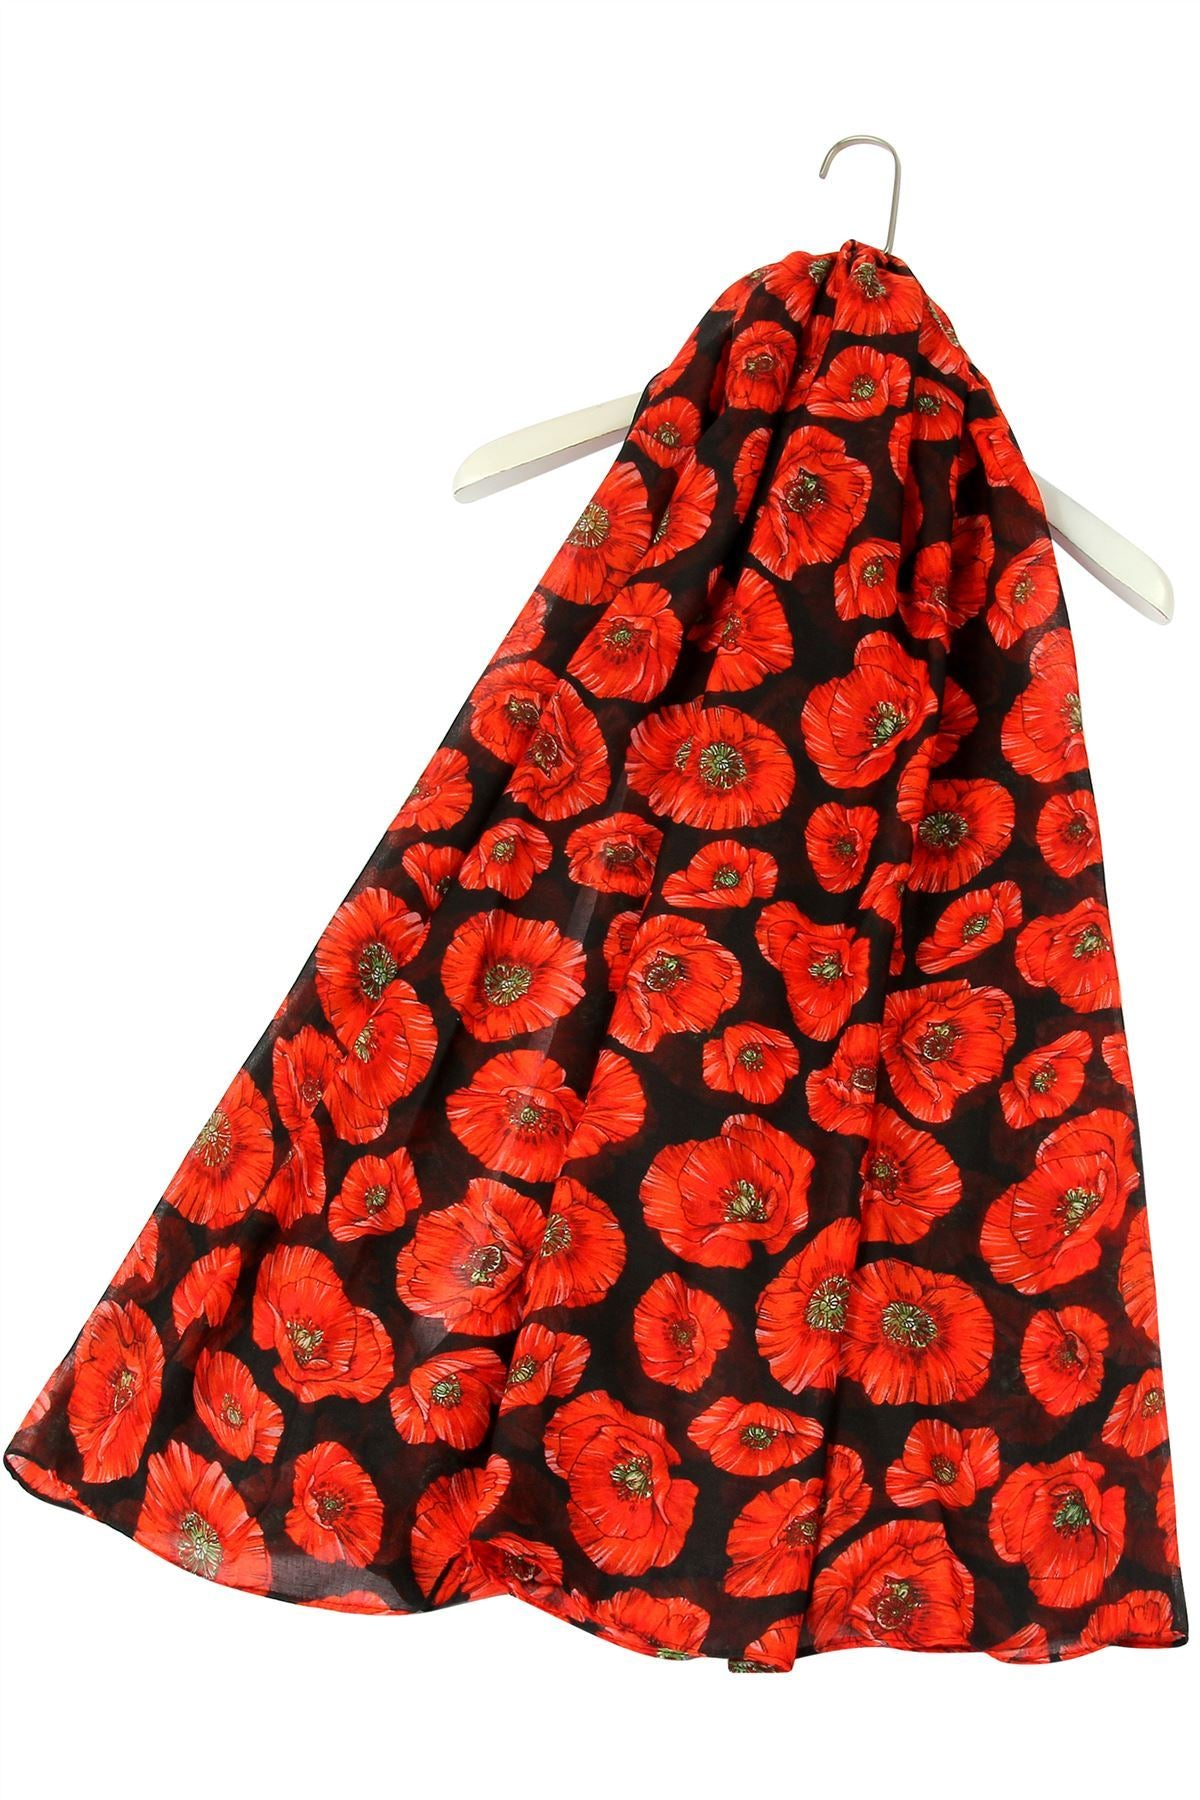 Detailed Poppy Print Scarf - Black